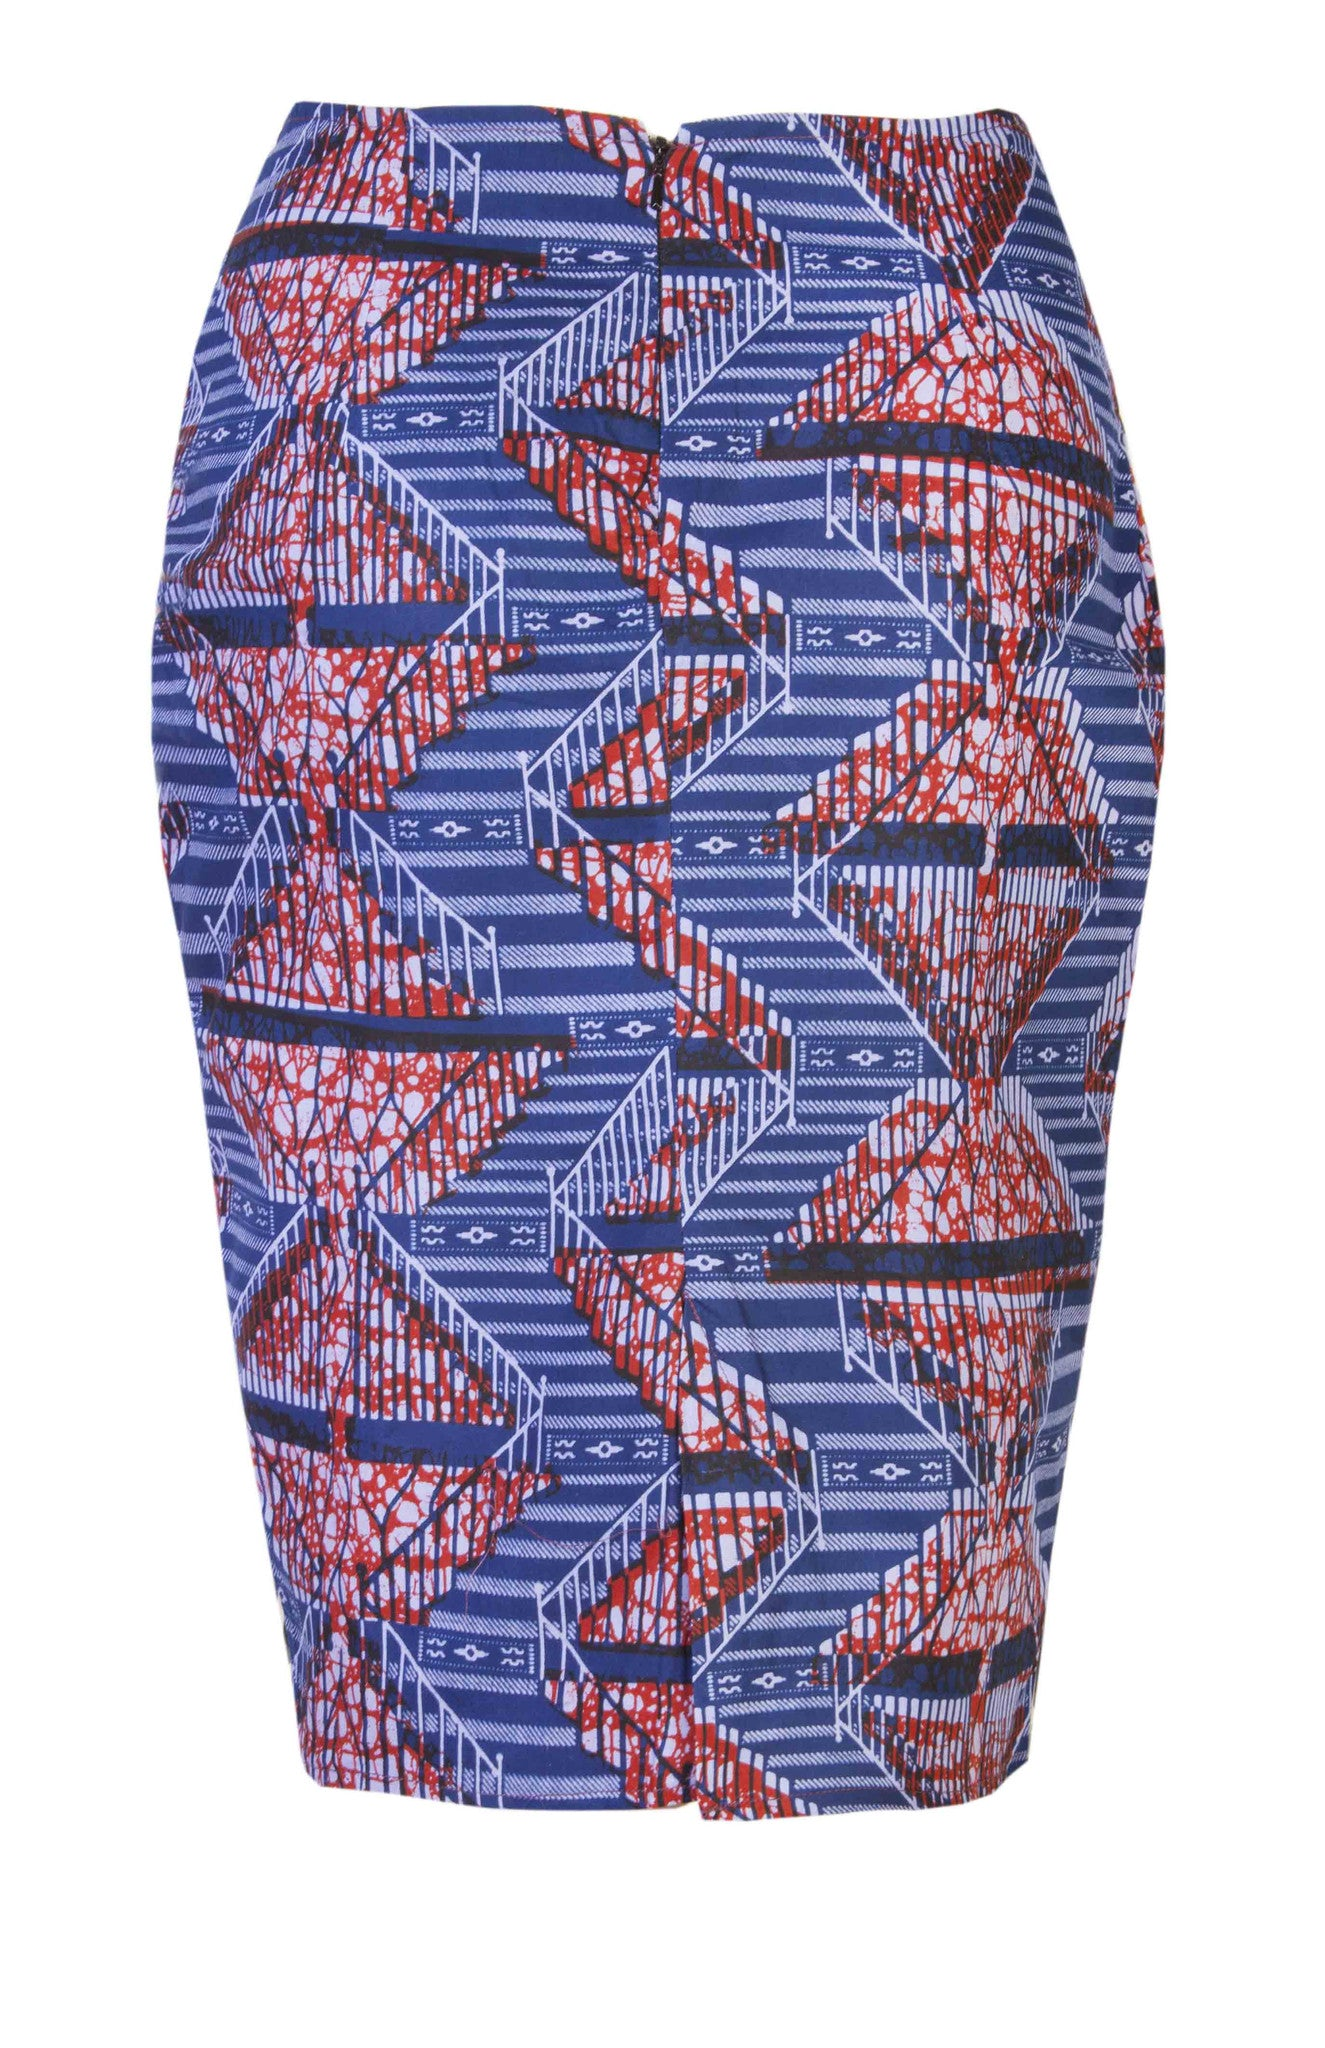 Abi-African Print Skirt - OHEMA OHENE AFRICAN INSPIRED FASHION  - 2